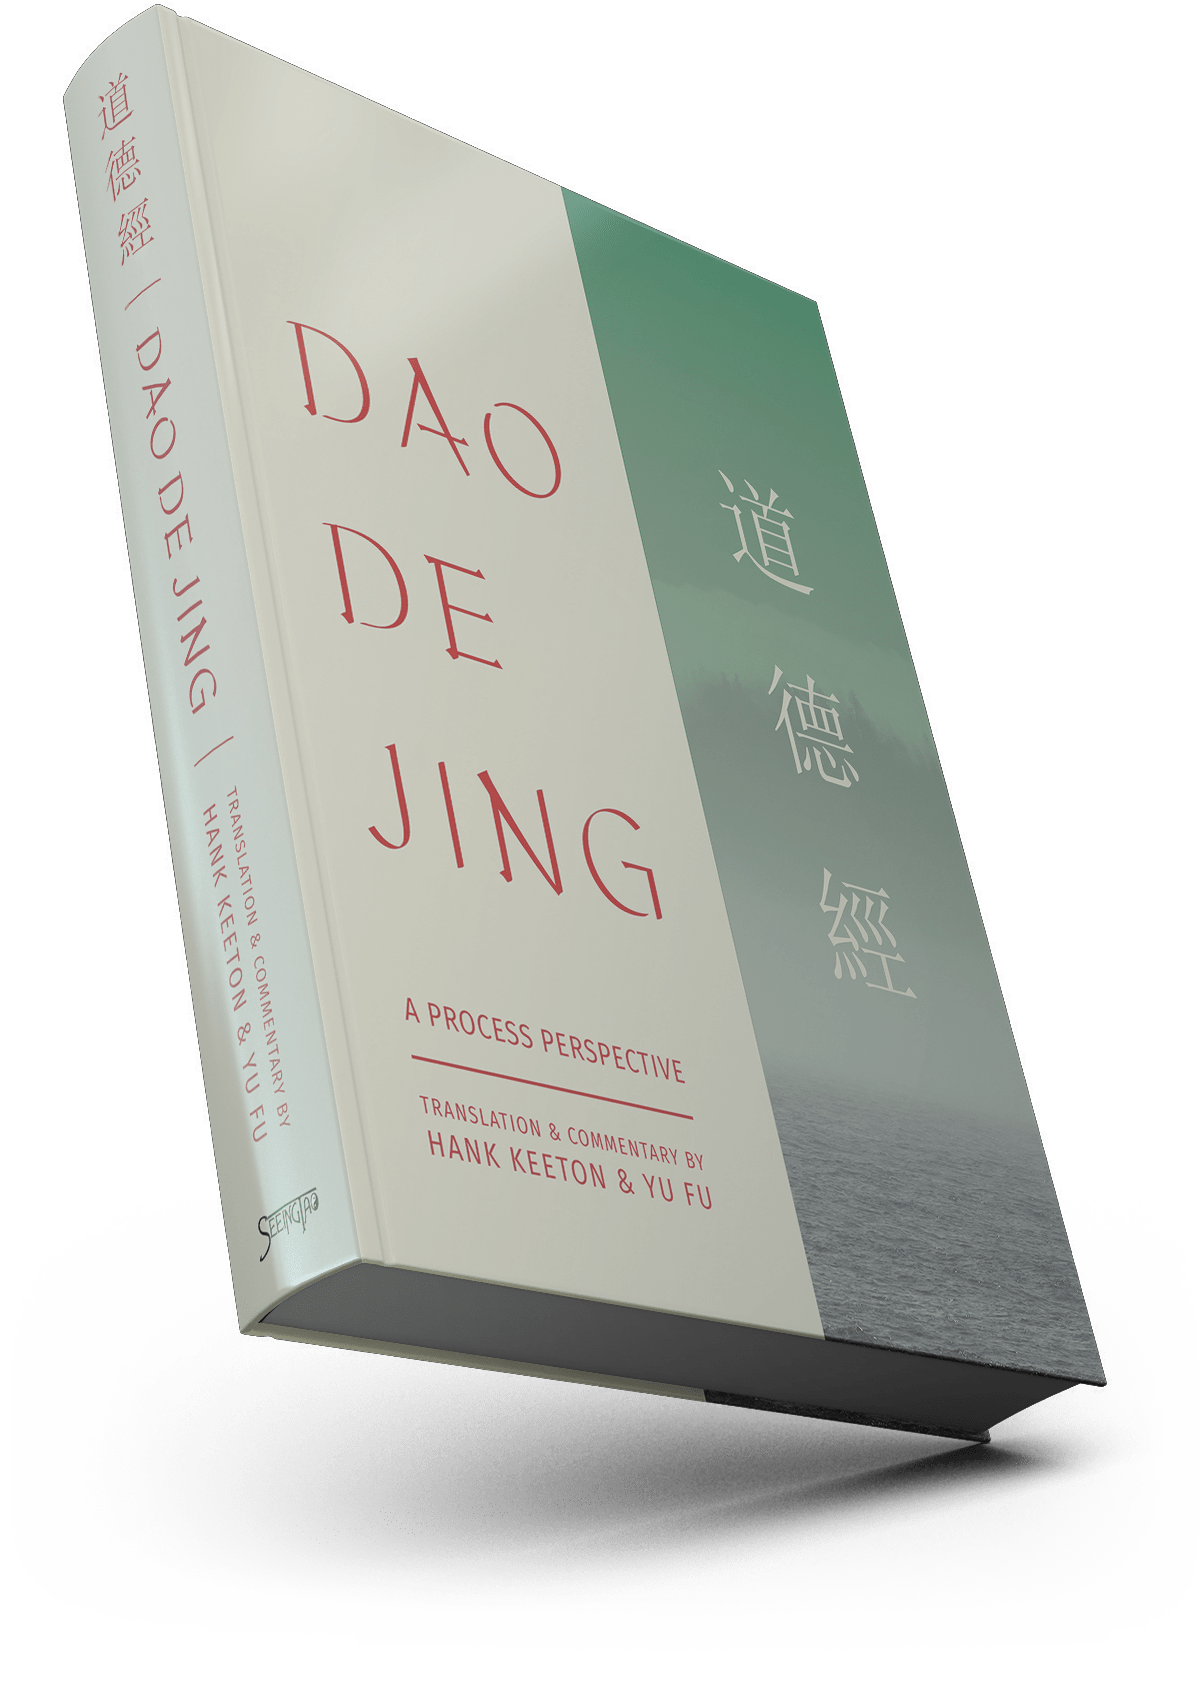 Hank Keeton - SeeingTao photographer and author of Dao De Jing, A process Perspective.